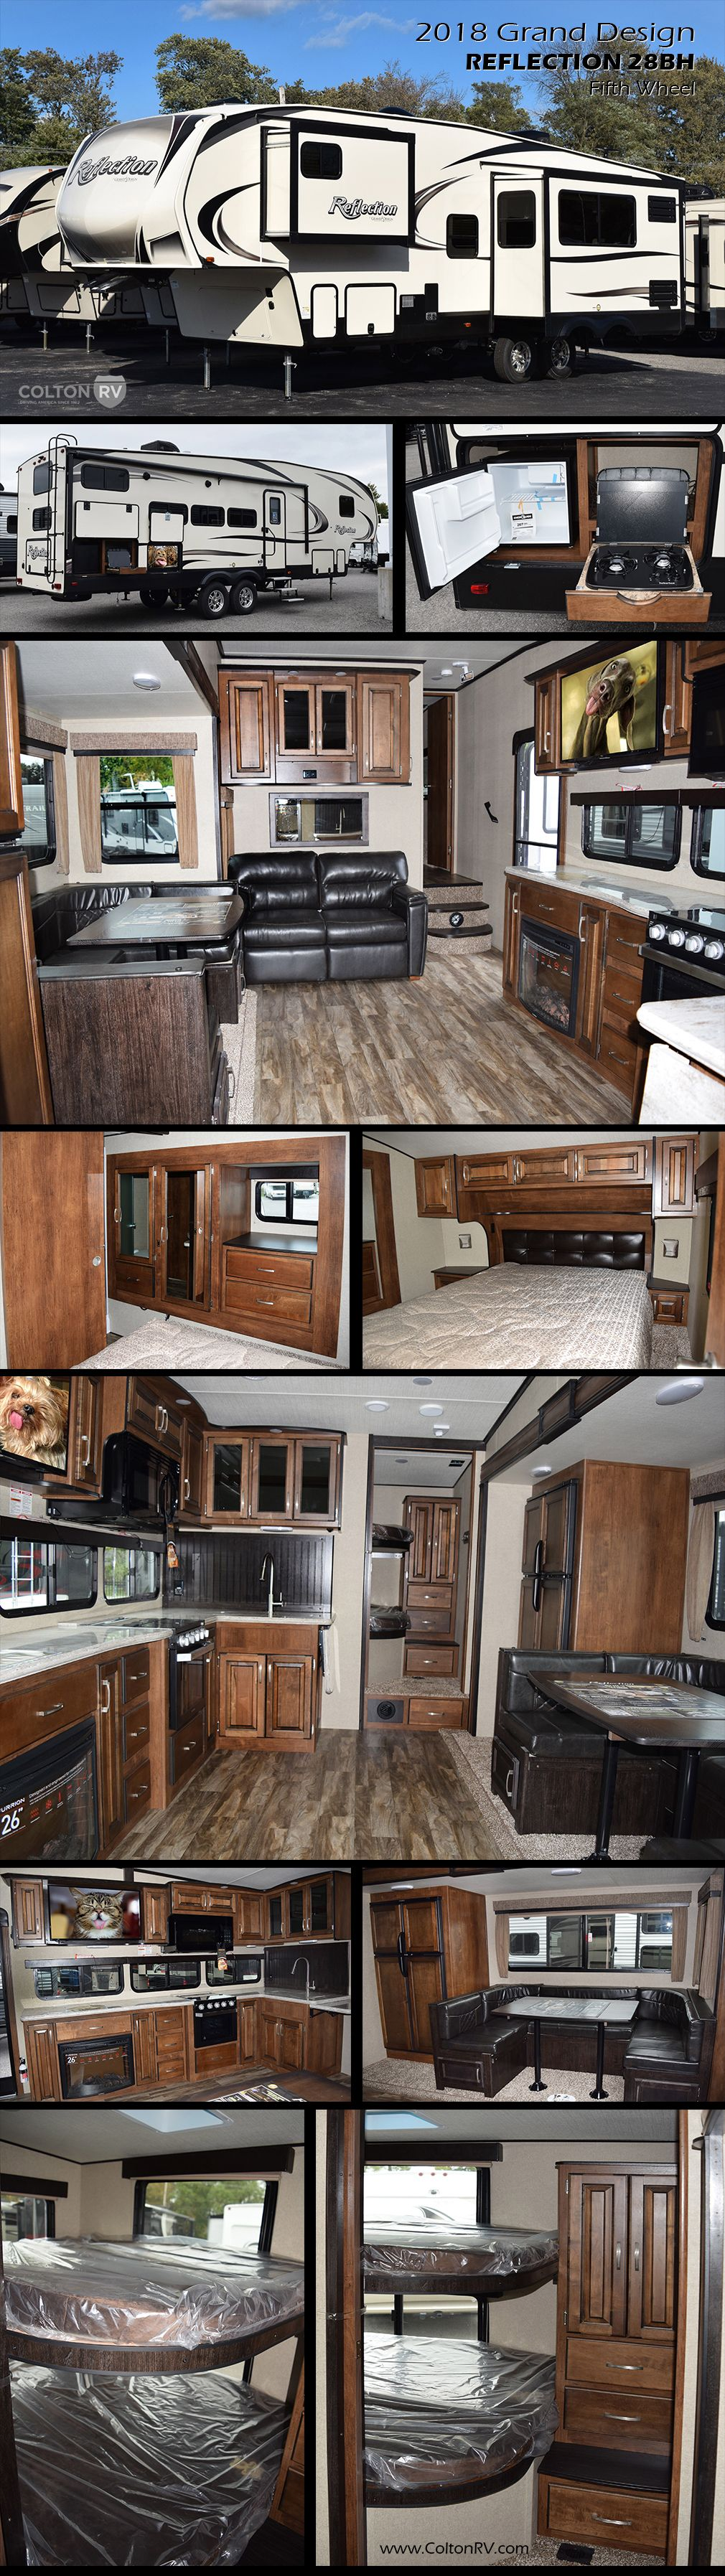 Inventory Colton Rv In Ny Buffalo Rochester And Syracuse Ny Rv Dealer Fifth Wheel Campers And Class A Motorhomes For Sale In Ny Vintage Camper Interior Renovation Camper Interior 5th Wheels